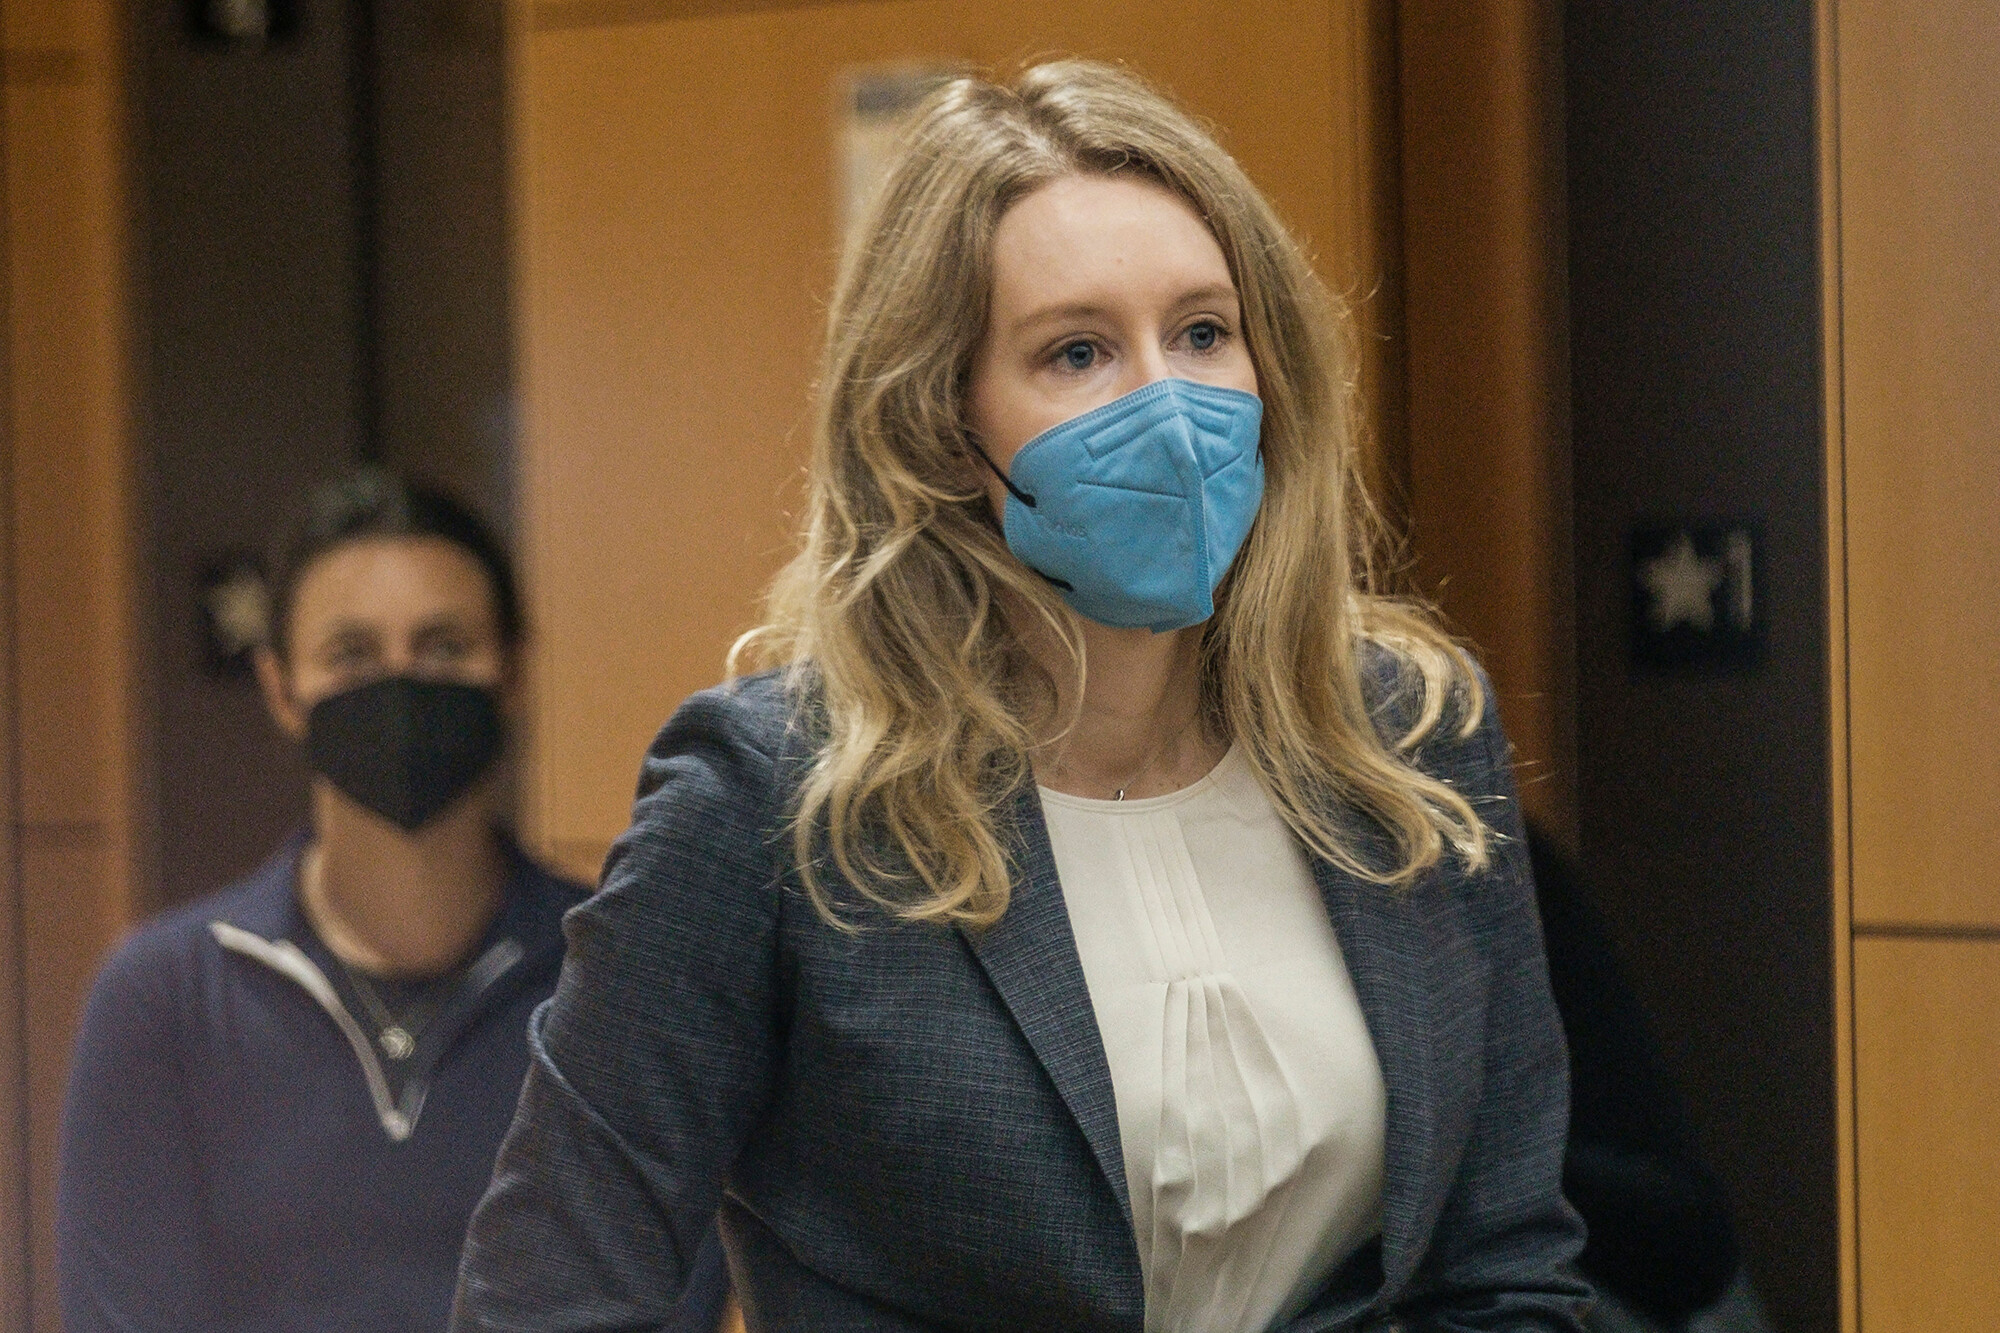 Elizabeth Holmes moved ahead with Walgreens rollout despite internal concerns, former Theranos scientist testifies